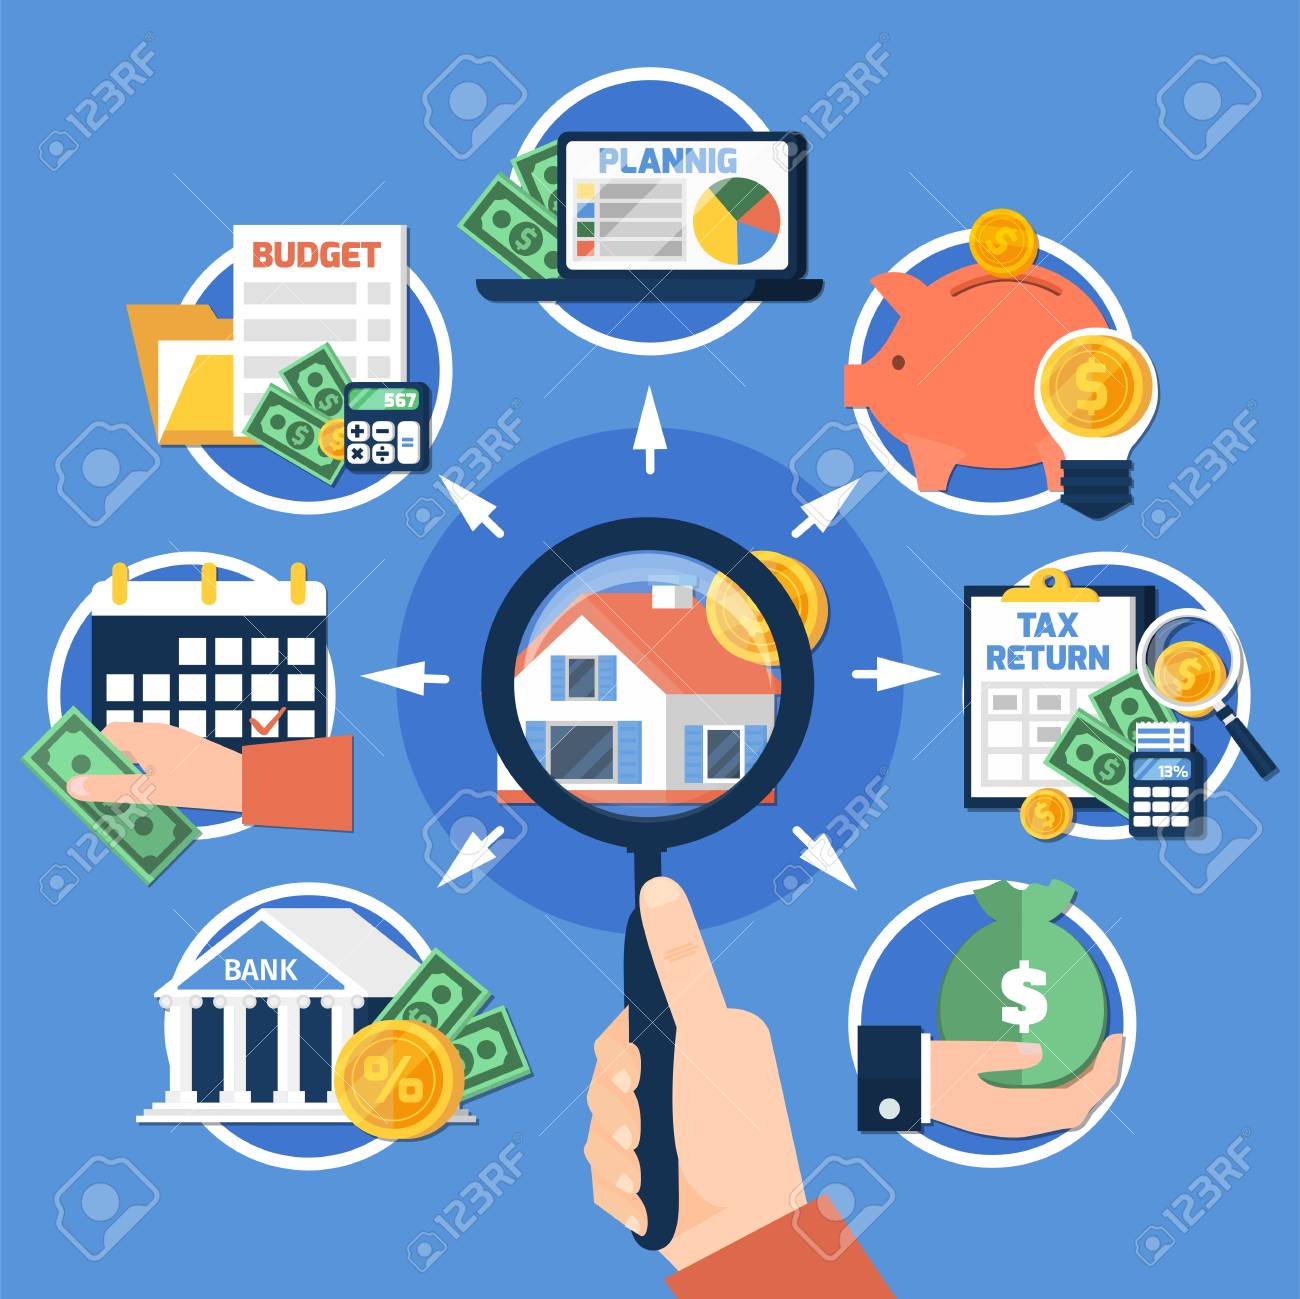 Estate tax composition on blue background with magnifier in hand, house, savings, budget planning, report. Vector illustration. - 94306256